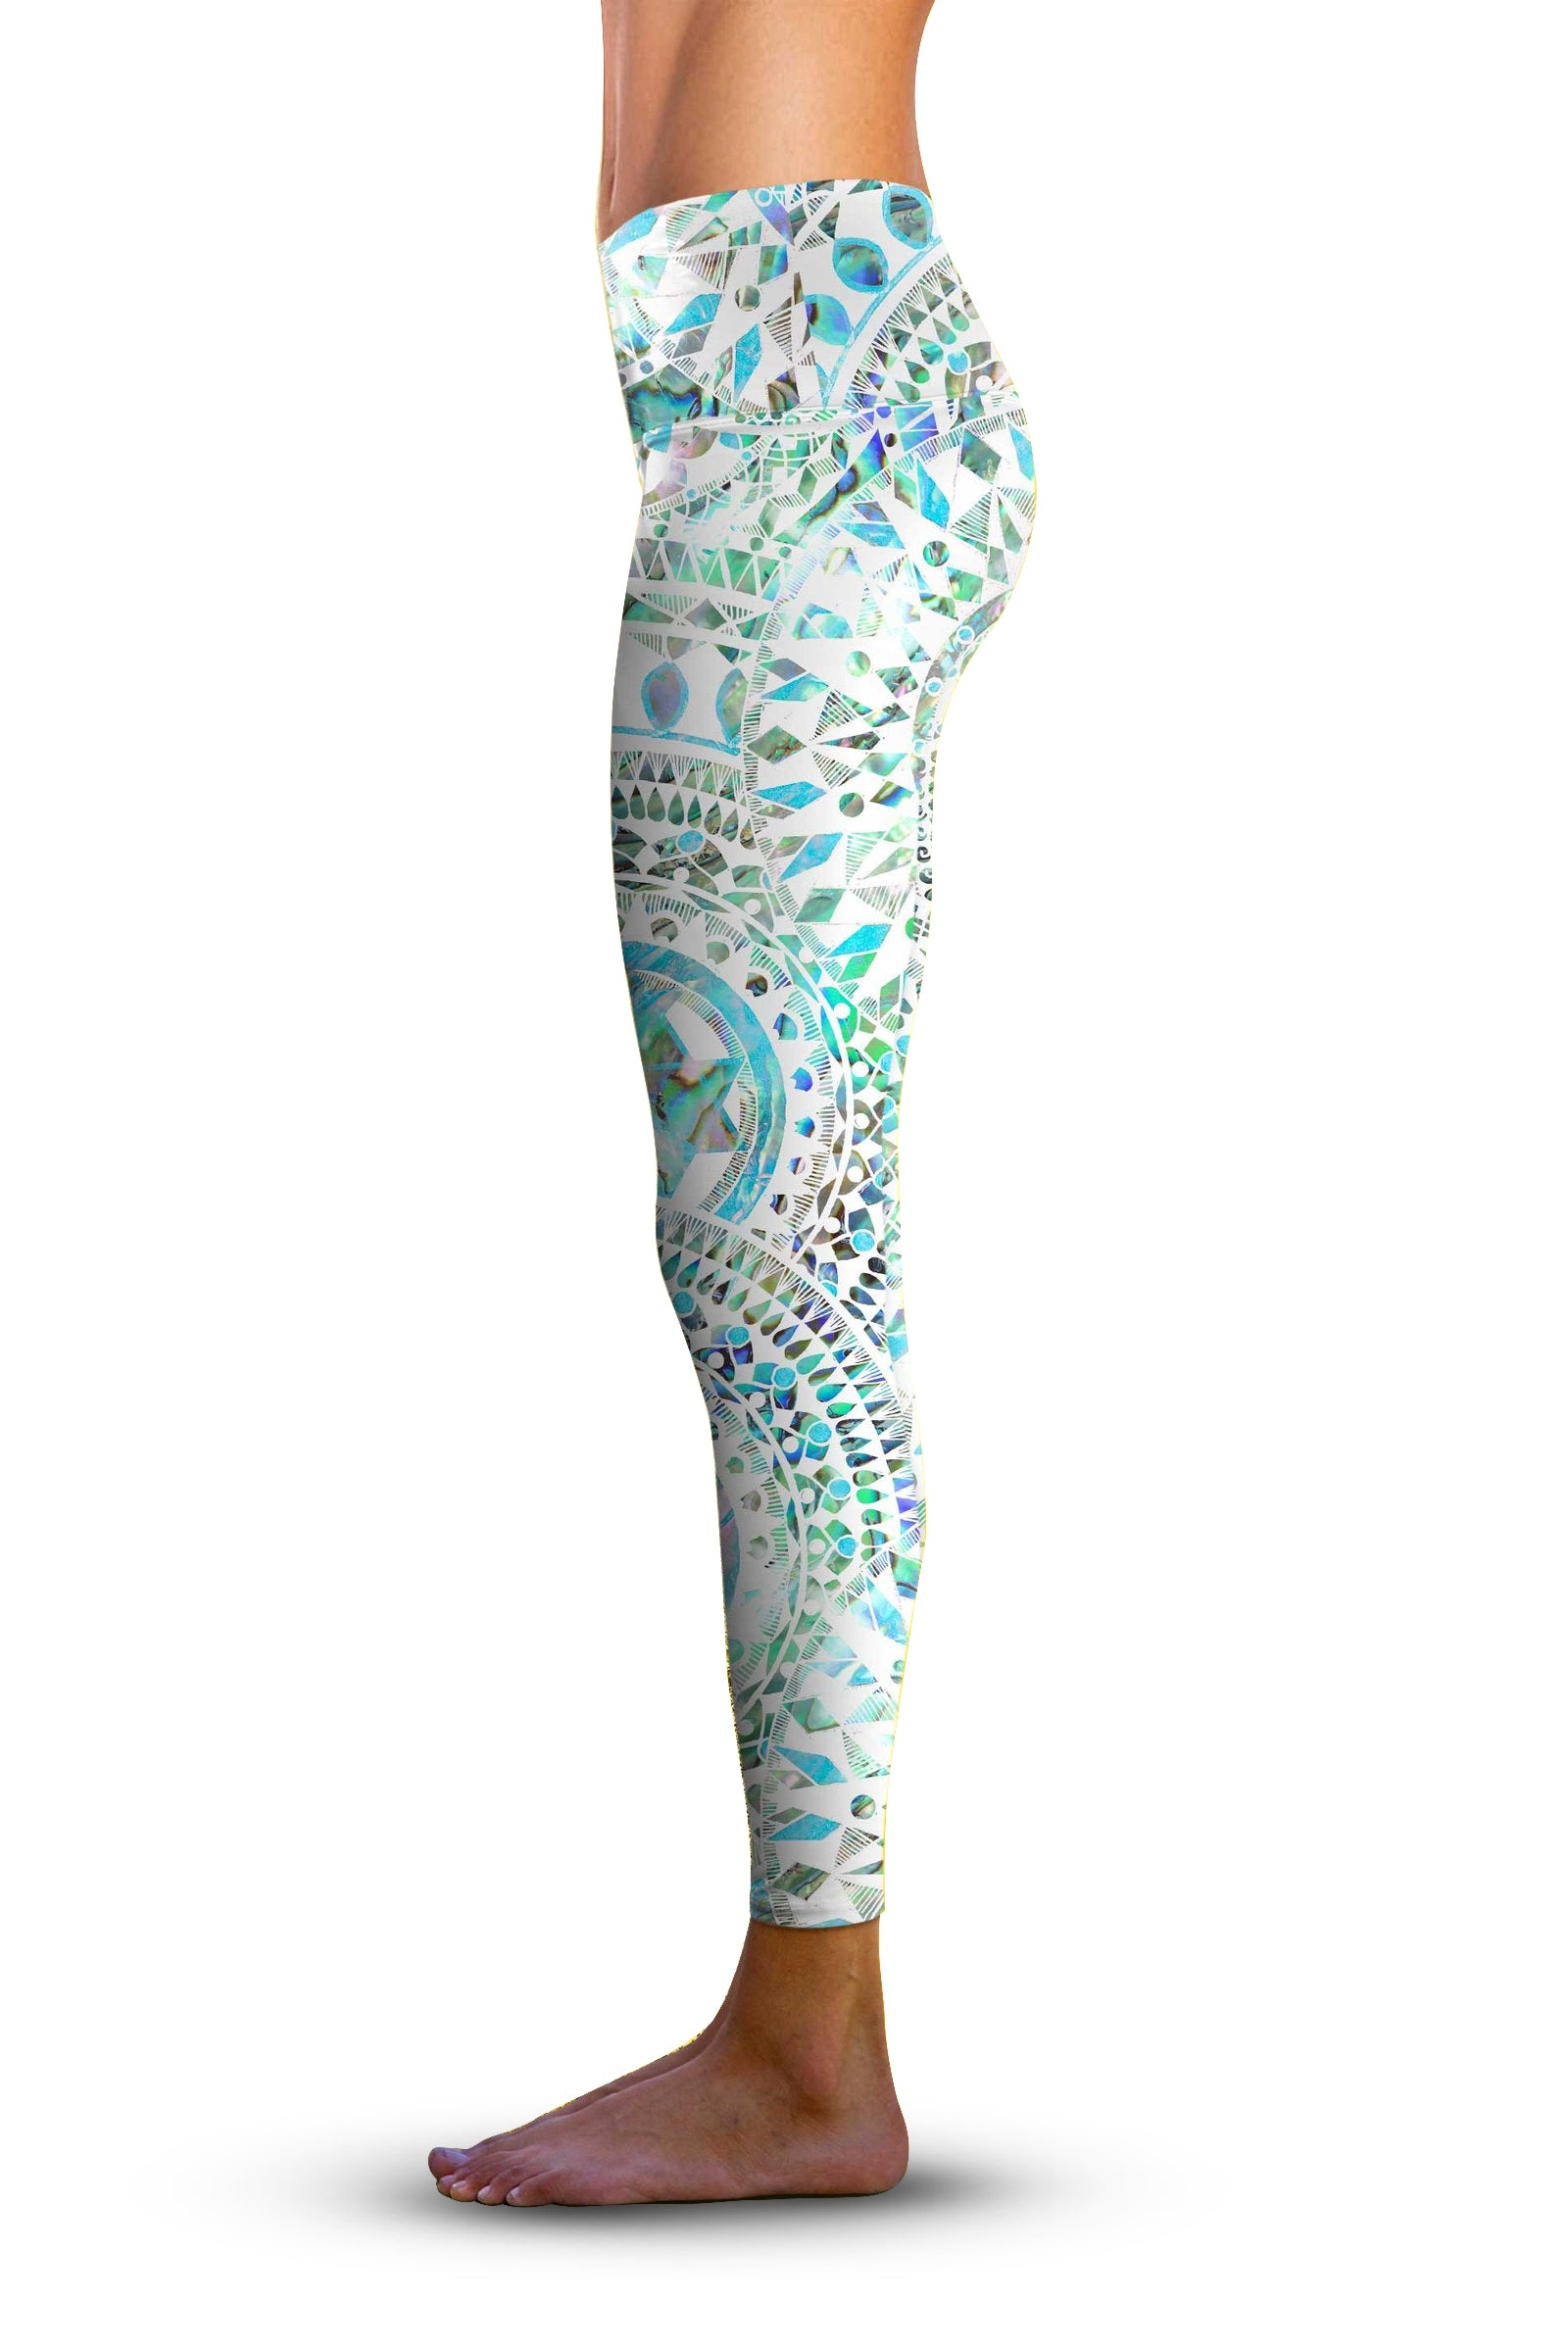 2nd Gen. Abalone Chakra, Eco-Friendly Active Performance Leggings